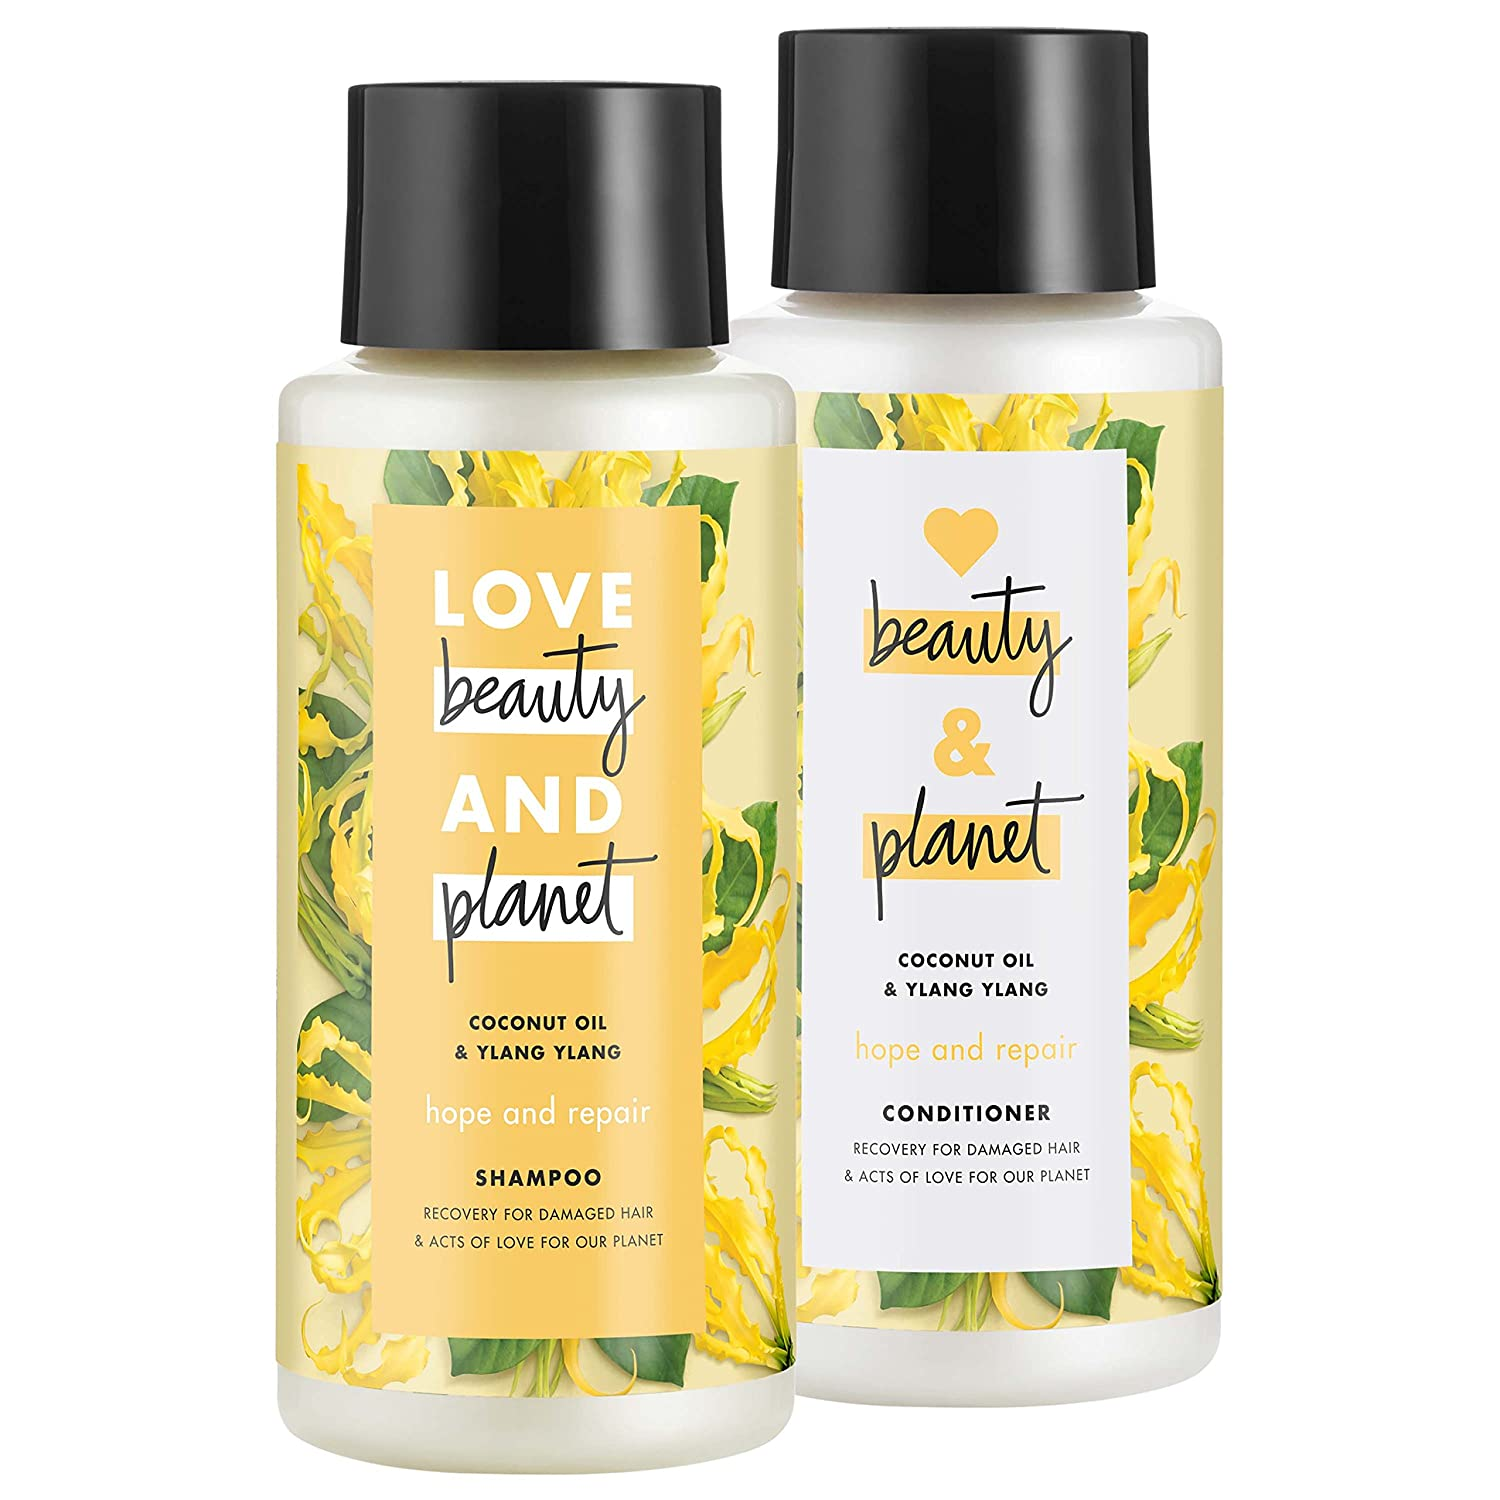 Love Beauty And Planet Shampoo and Conditioner for Damaged Hair Coconut Oil and Ylang Ylang 13.5 oz, 2 count